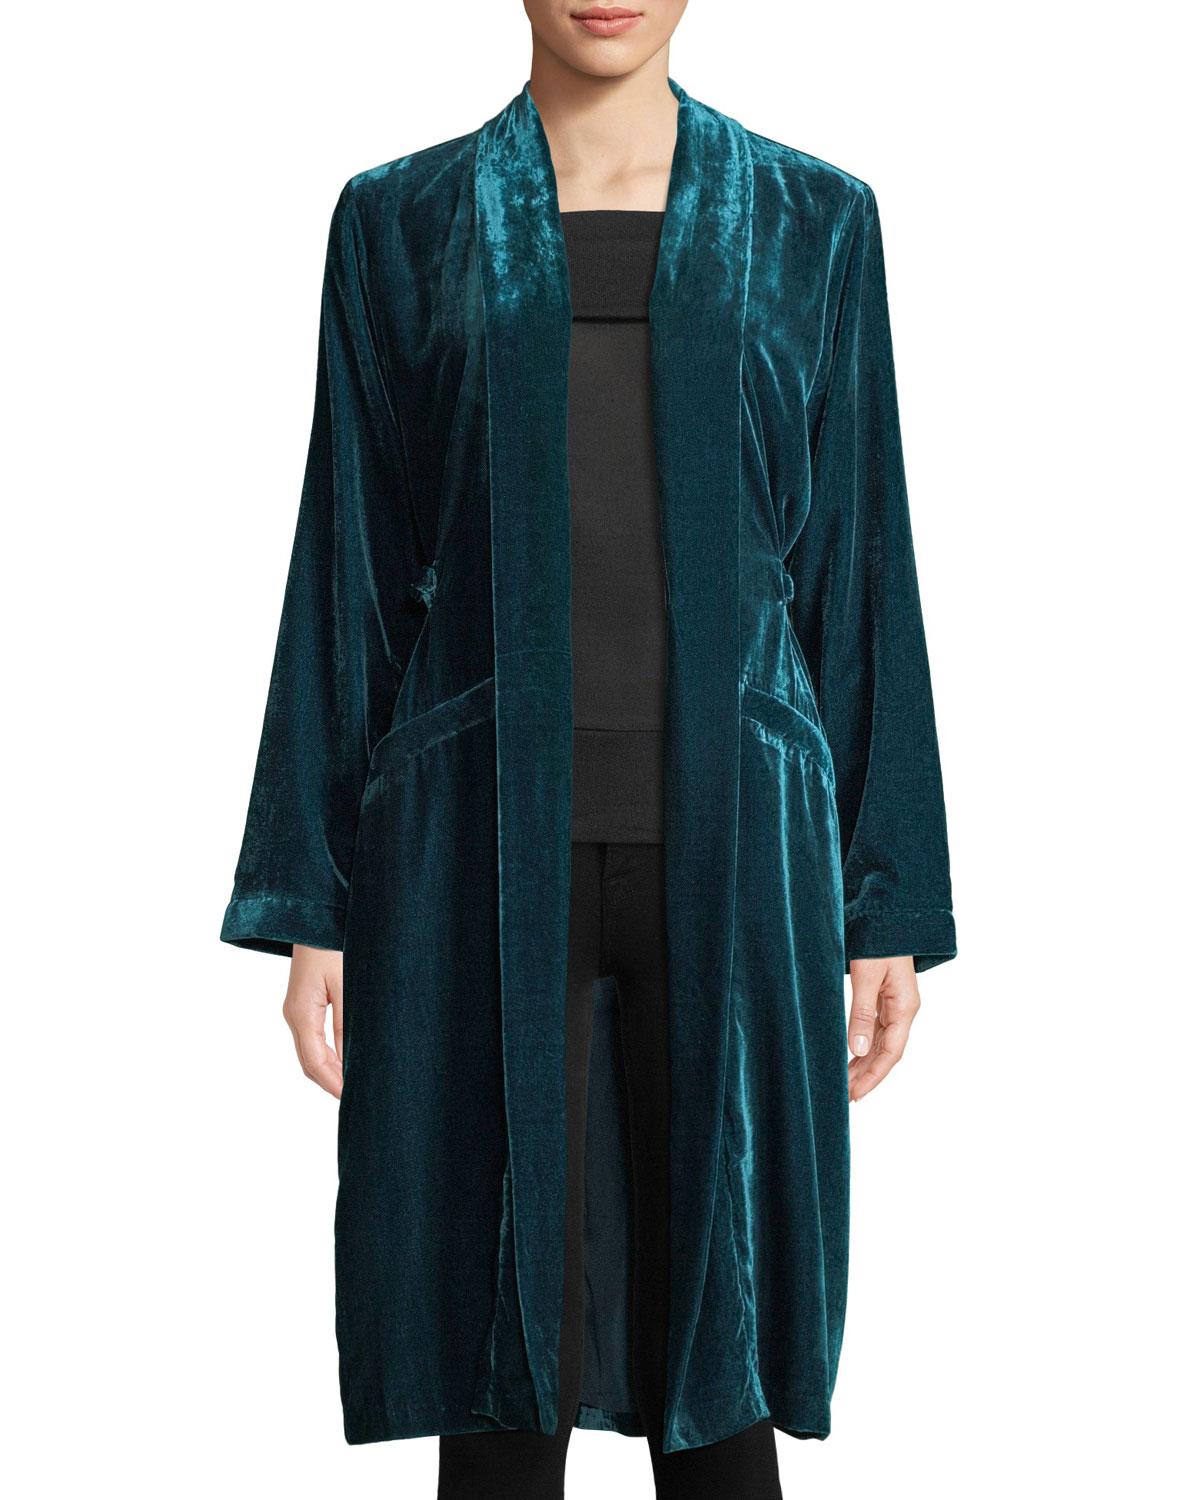 Albany Velvet Duster Jacket in Green